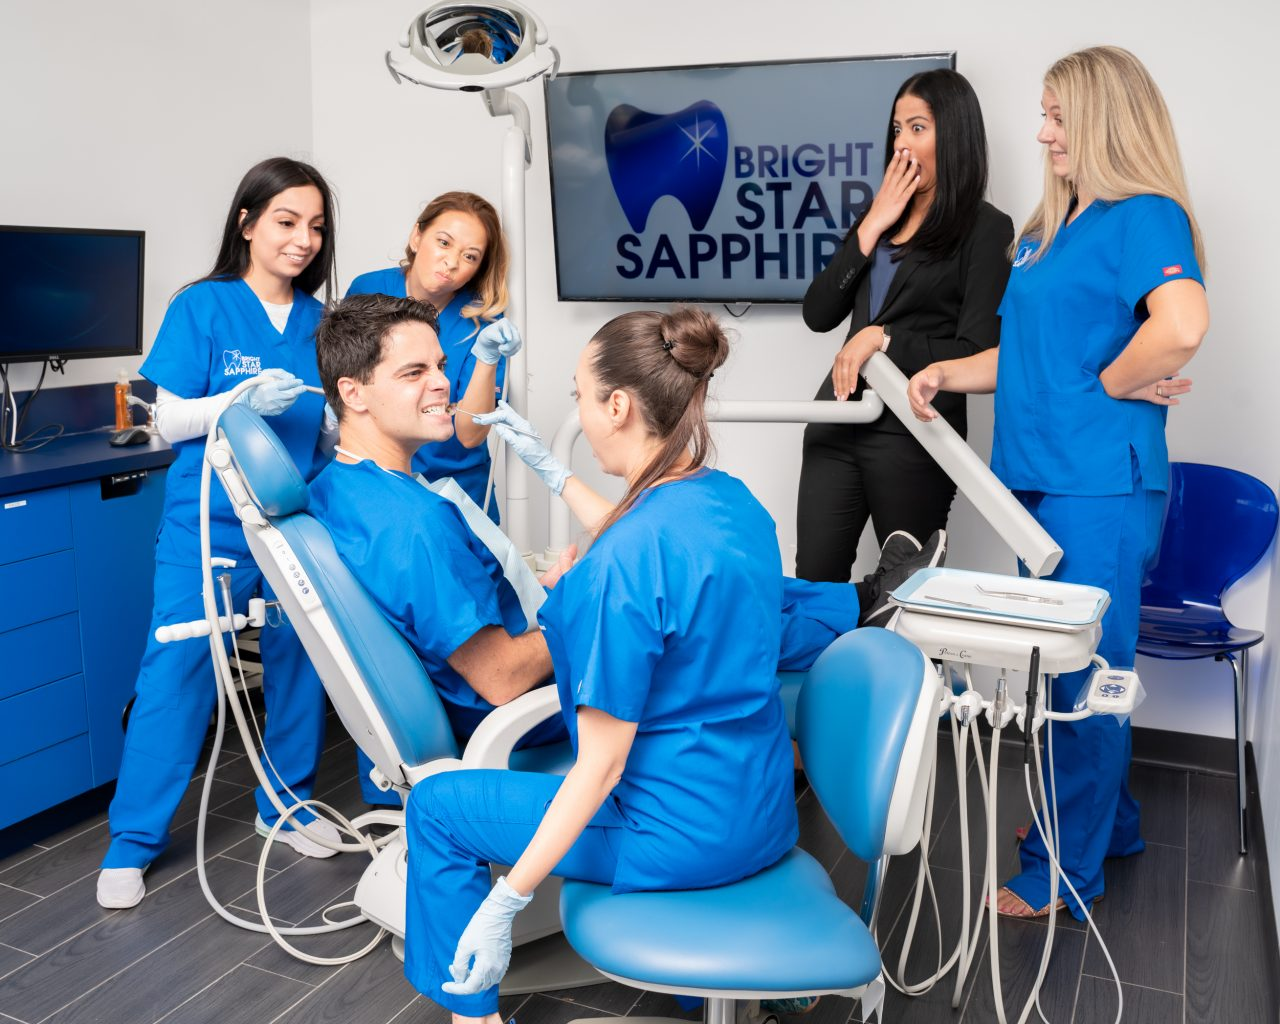 Bright Star Sapphire Dental (Fair Lawn, NJ) - Dental staff working and having fun